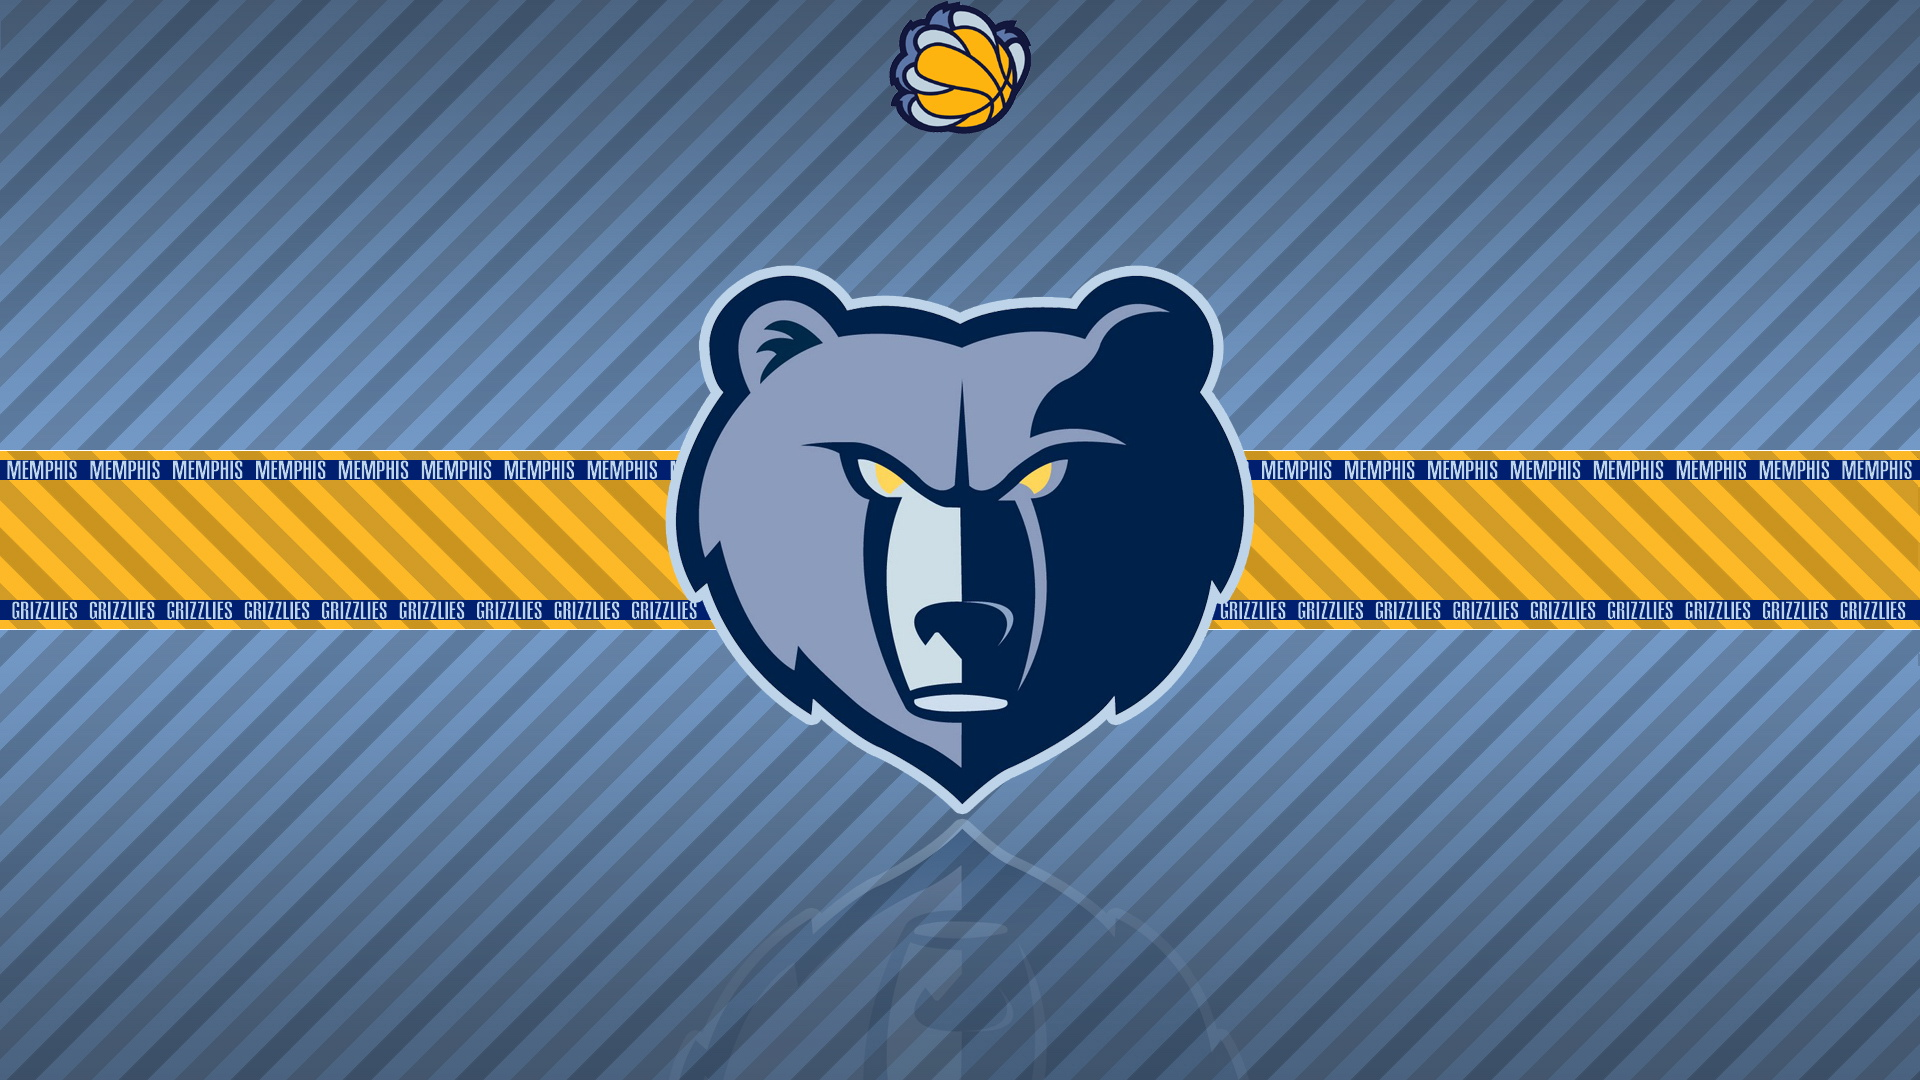 Memphis Grizzlies Players